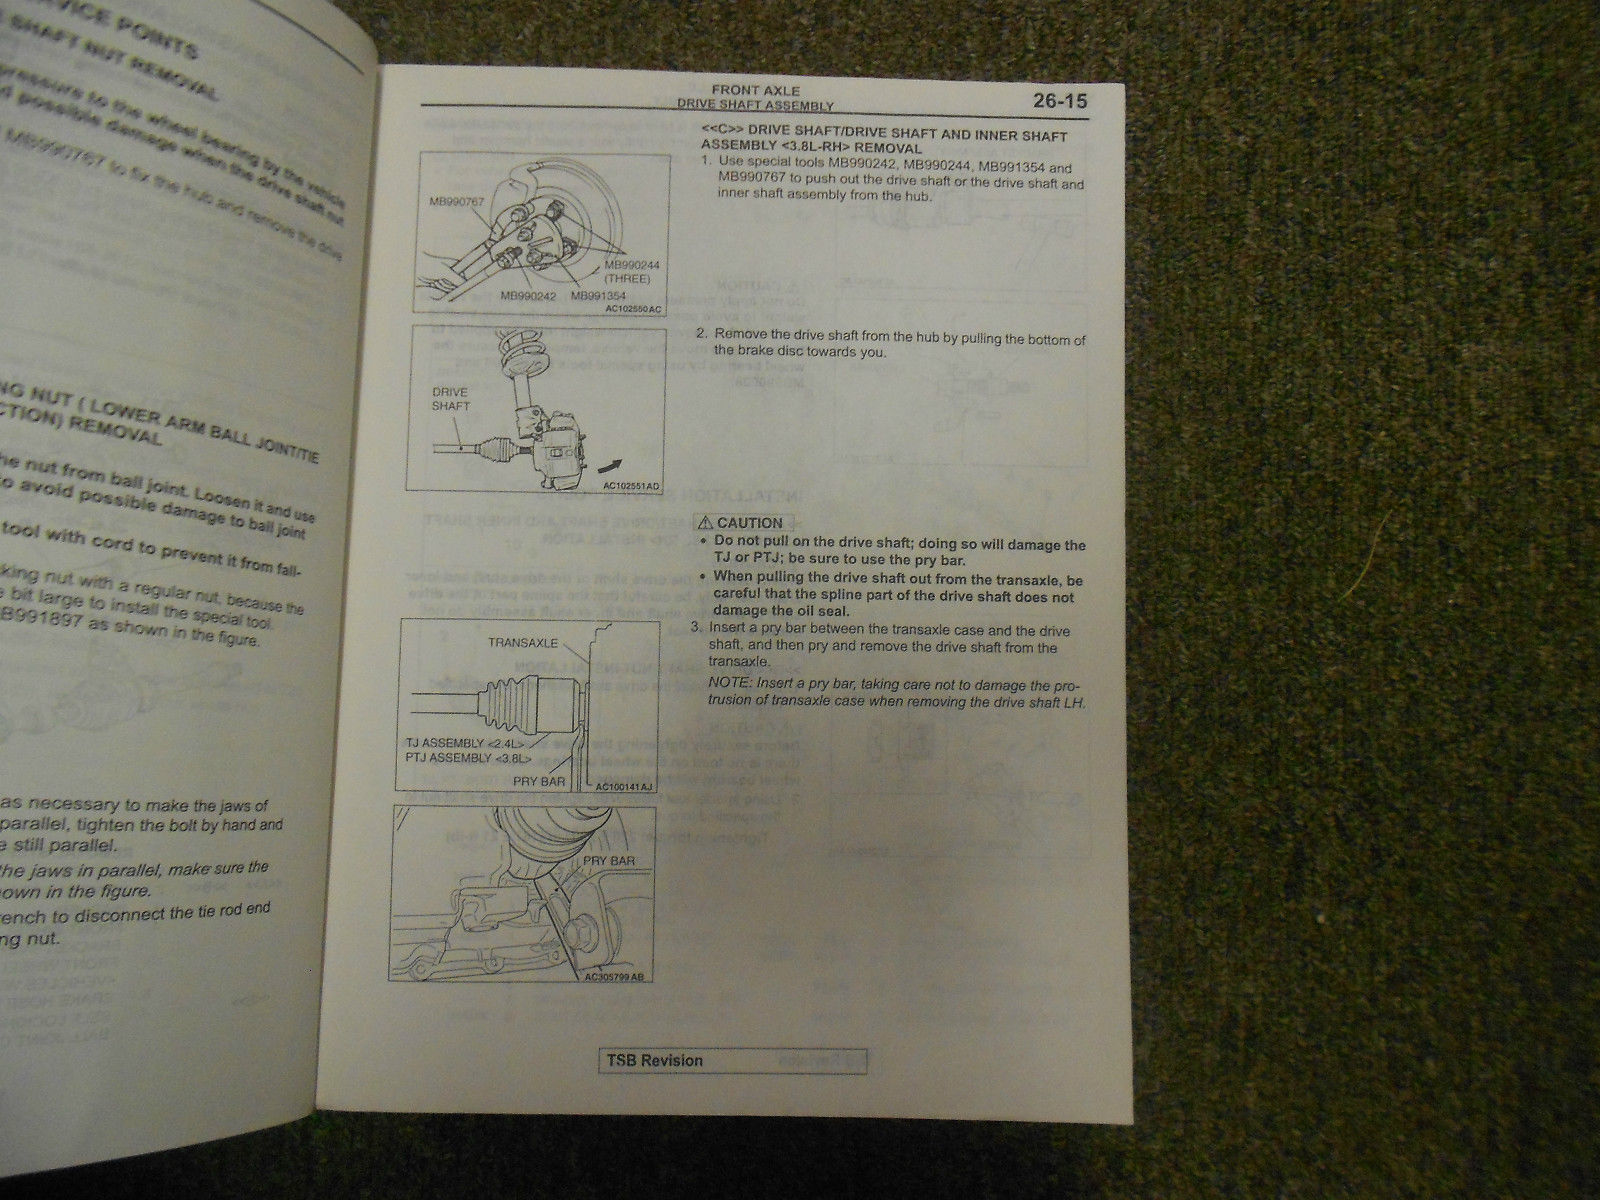 2004 MITSUBISHI Galant Service Repair Shop Manual VOL 3 OEM 04 FACTORY OEM 04 image 11